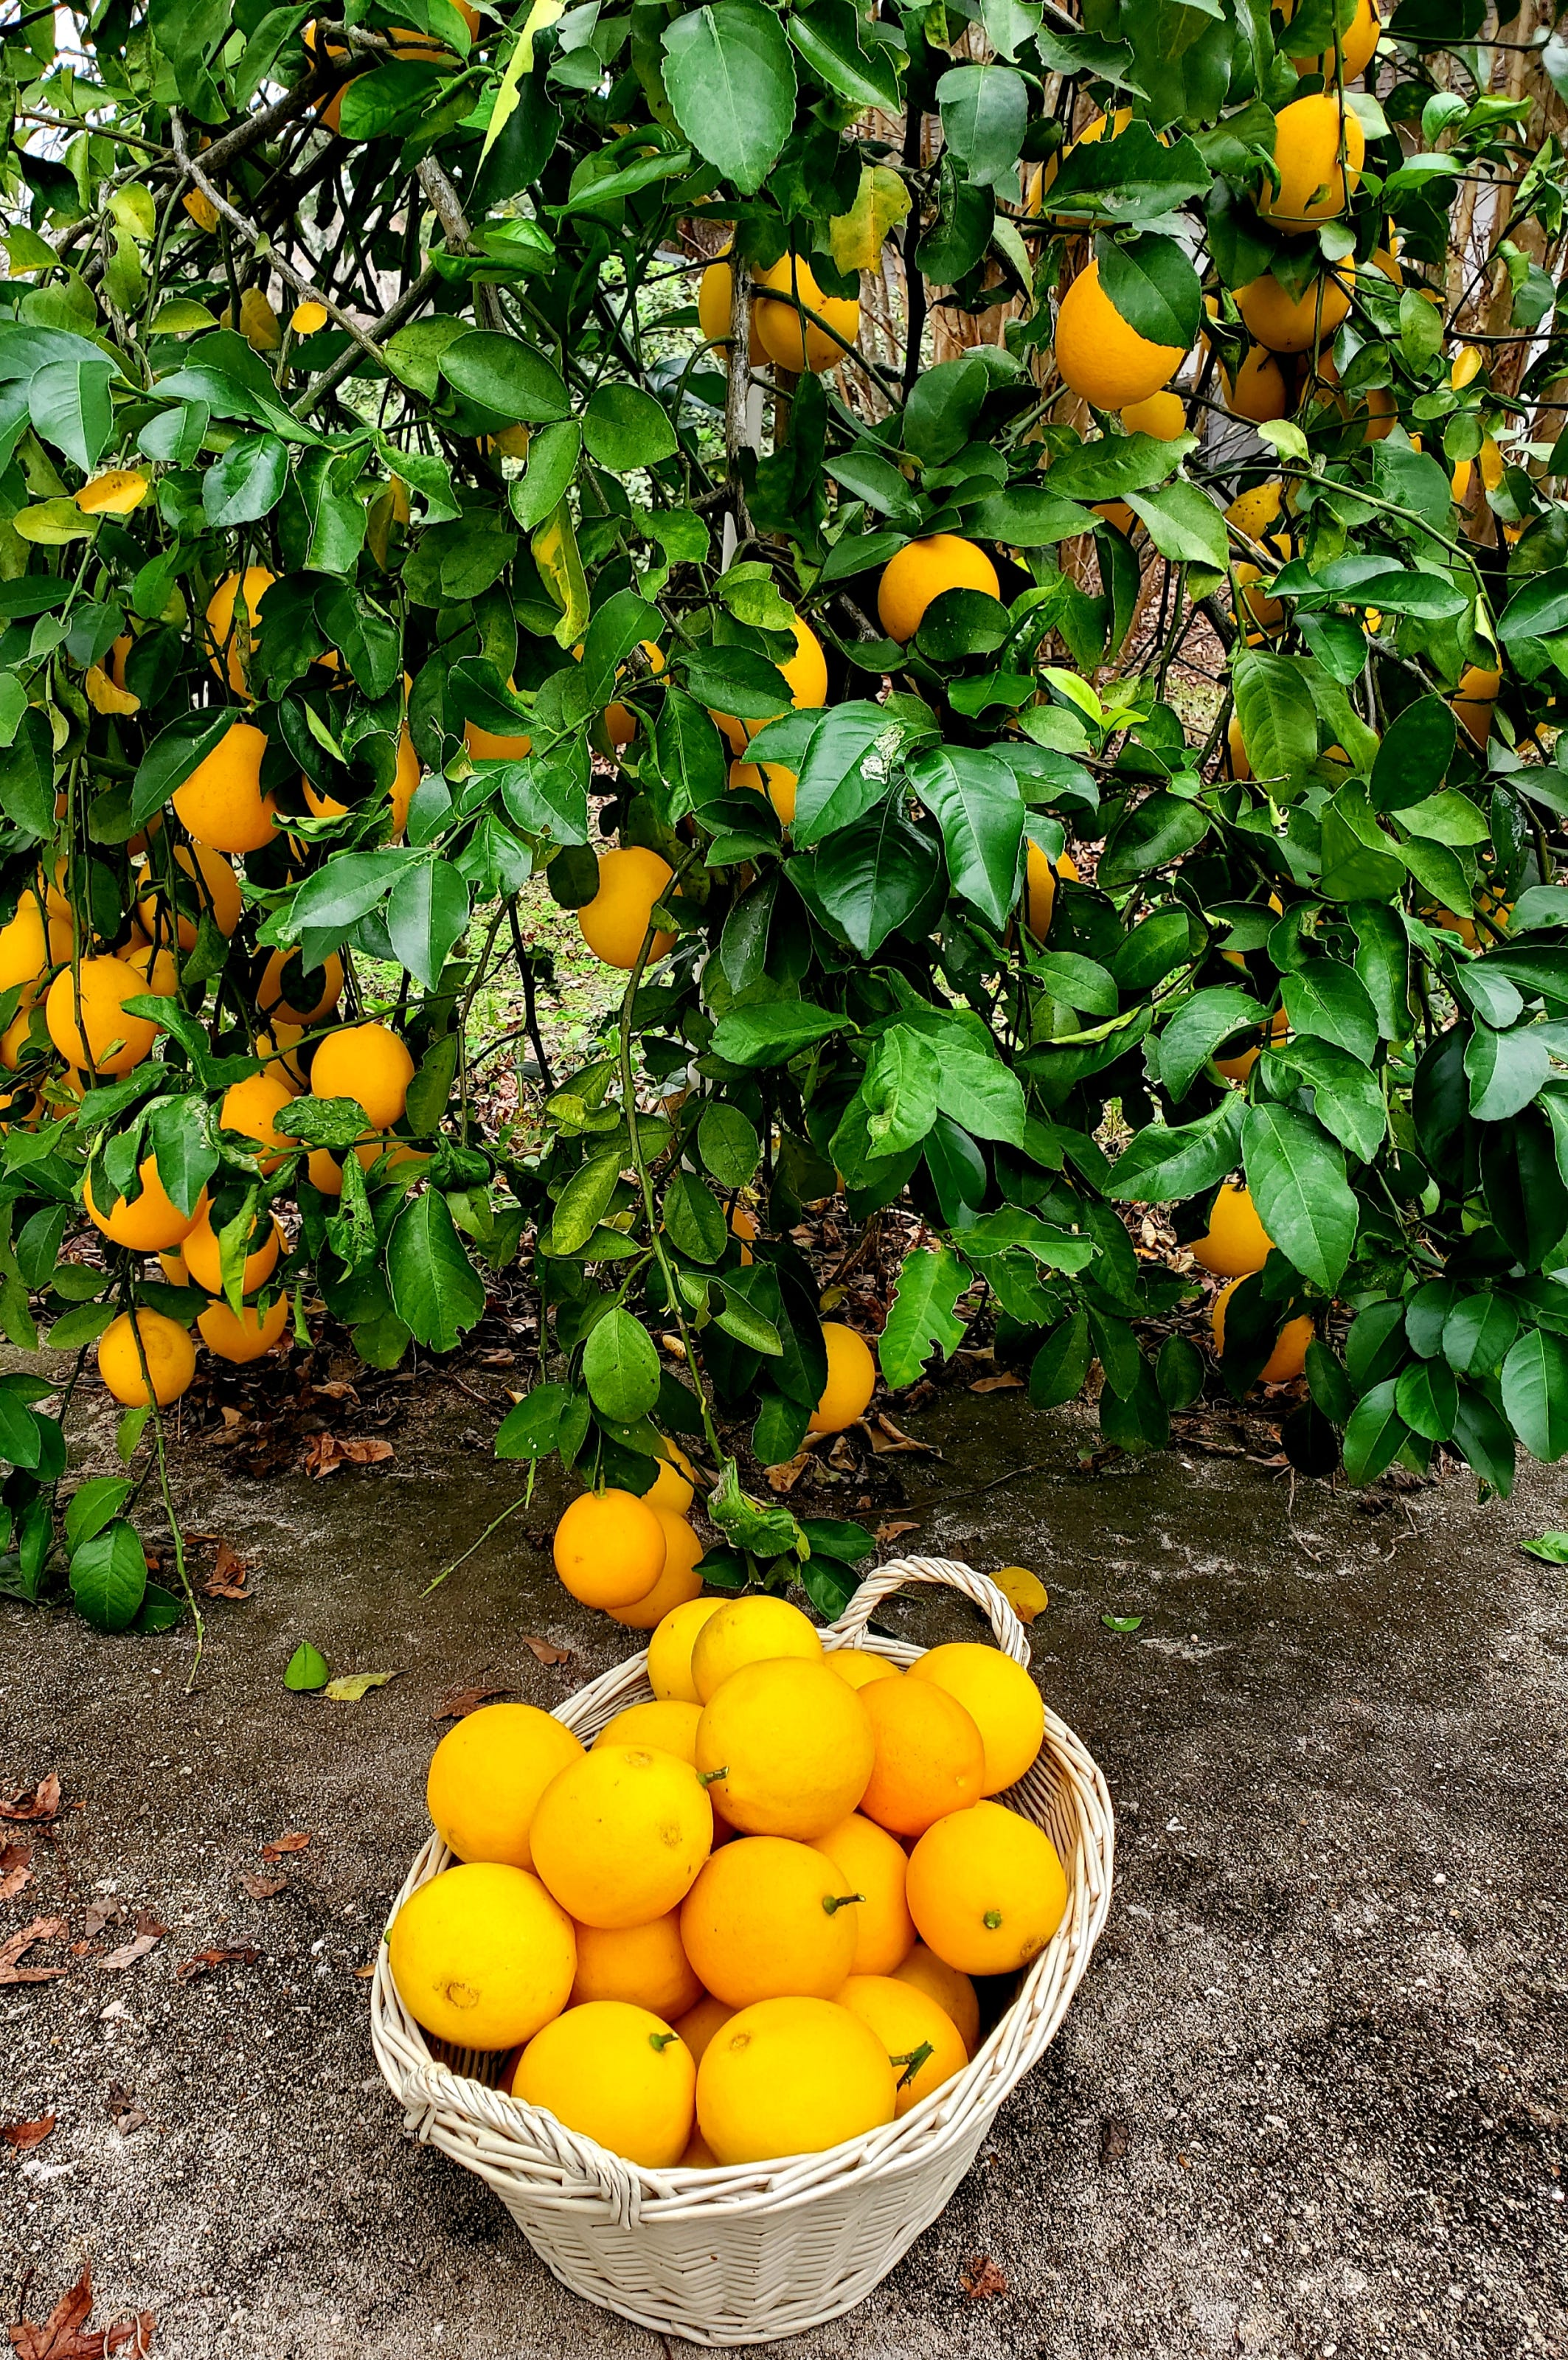 Do This To Protect Meyer Lemon Trees From Freezing Temperatures